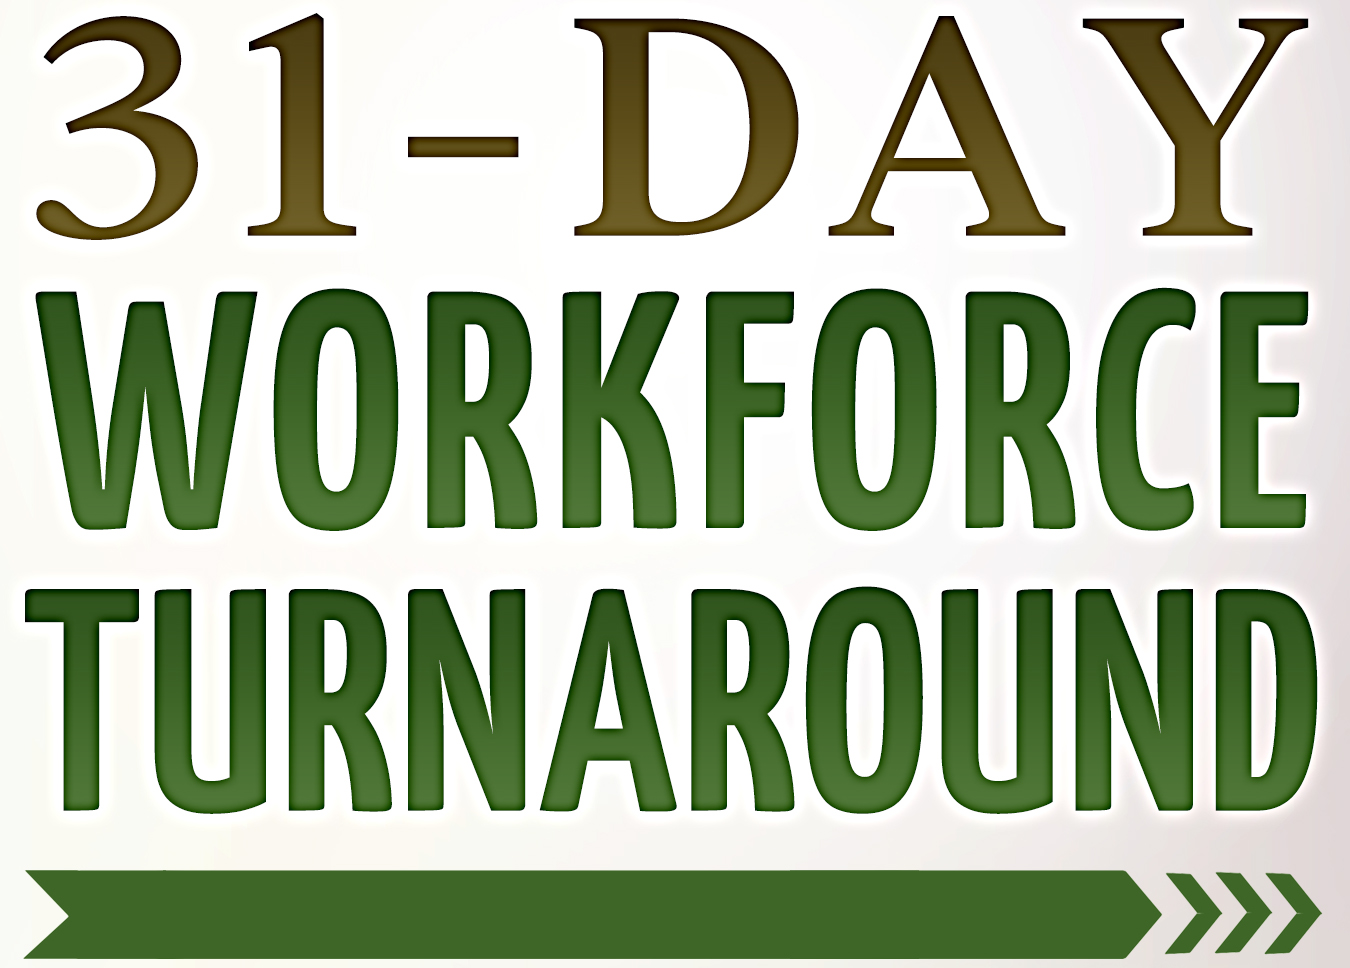 31-Day Workforce Turnaround